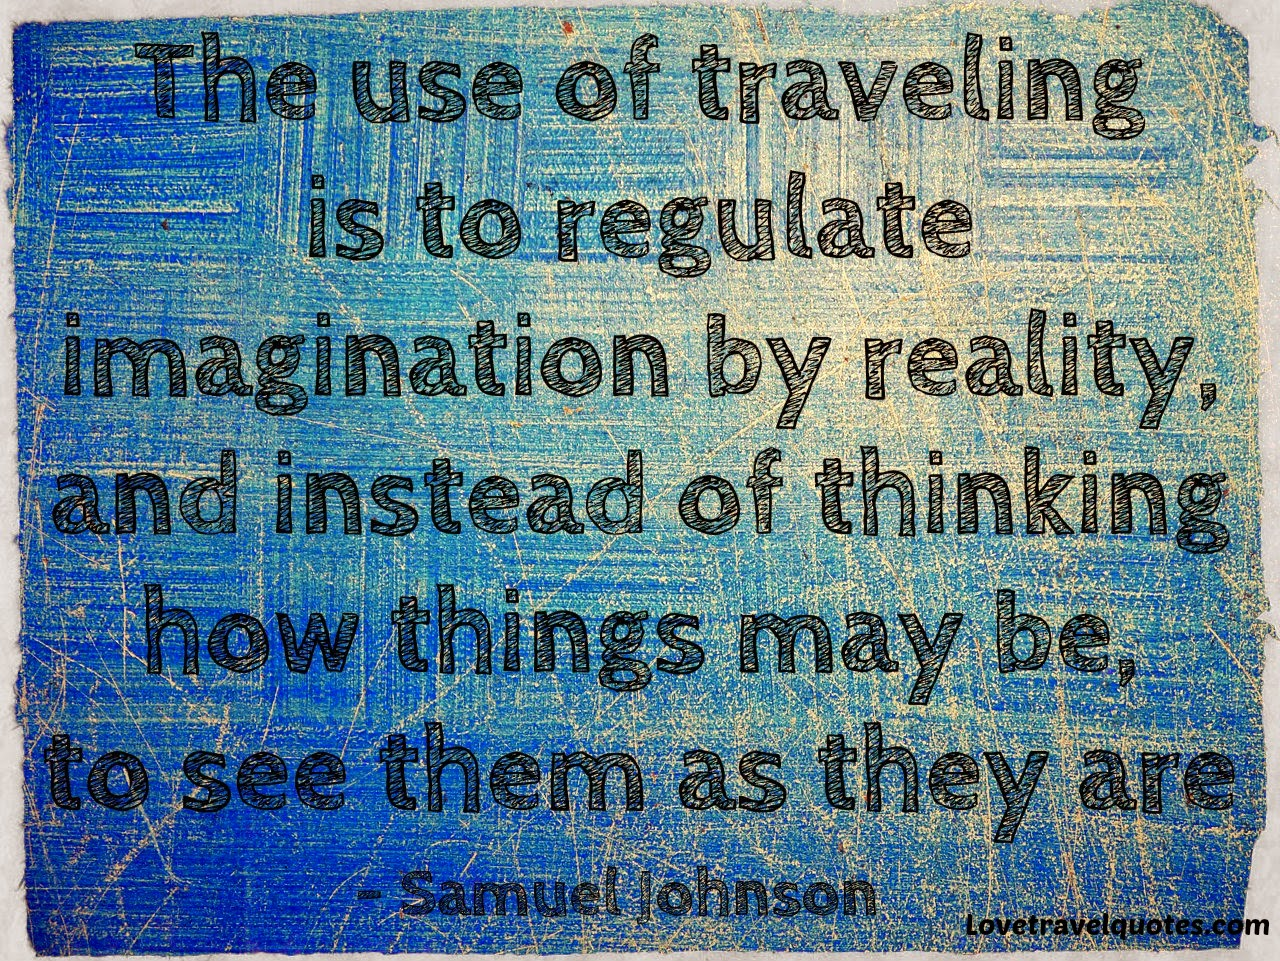 the use of traveling is to regulate imagination by reality